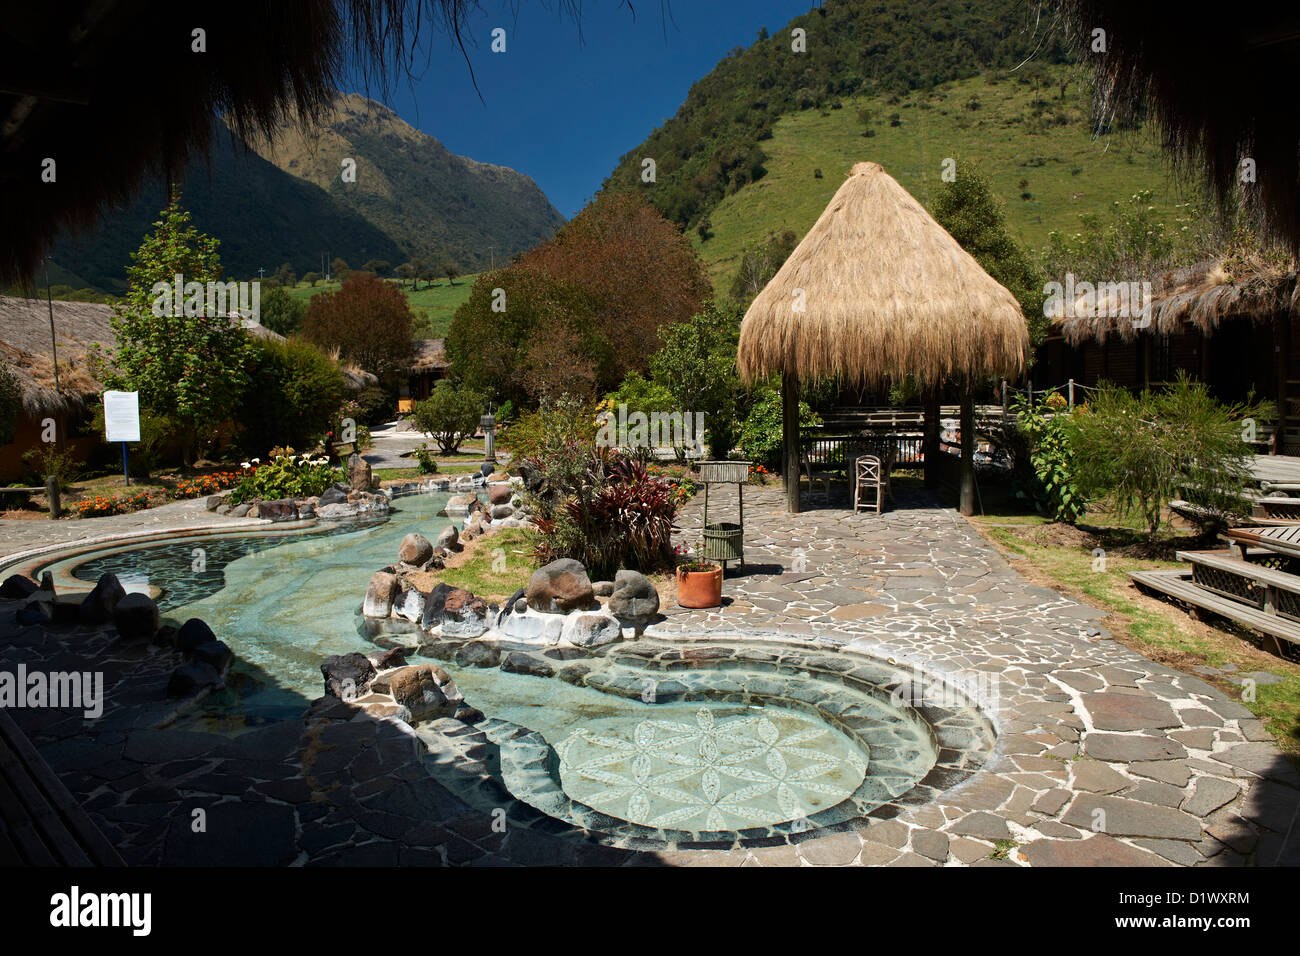 bath with hot springs in hotel of Papallacta, Andes, Ecuador - Stock Image